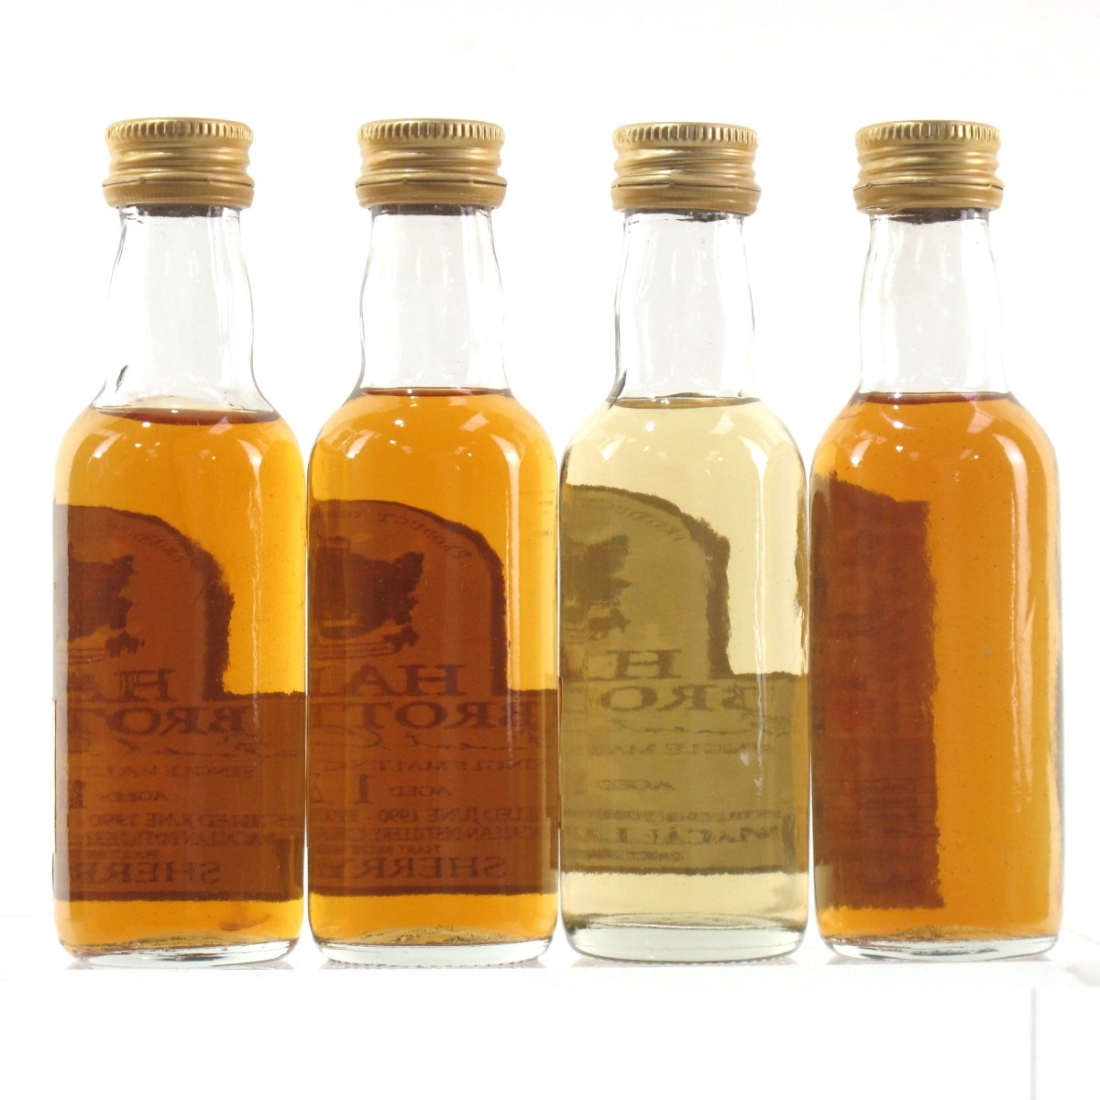 Macallan Independently Bottled Miniature Selection 4 x 5cl